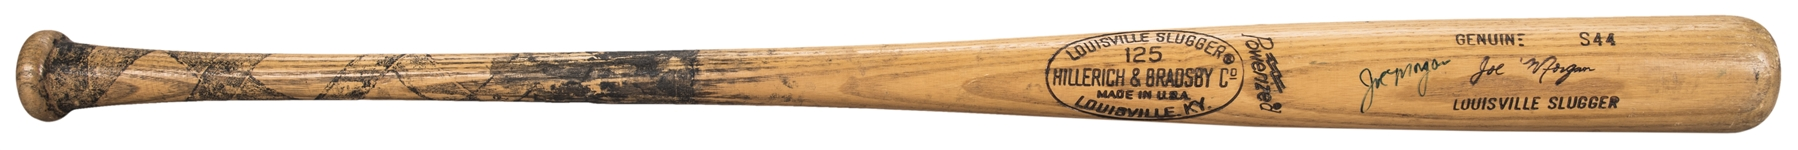 1979 Joe Morgan Game Used & Signed Hillerich & Bradsby S44 Model Bat (PSA/DNA)